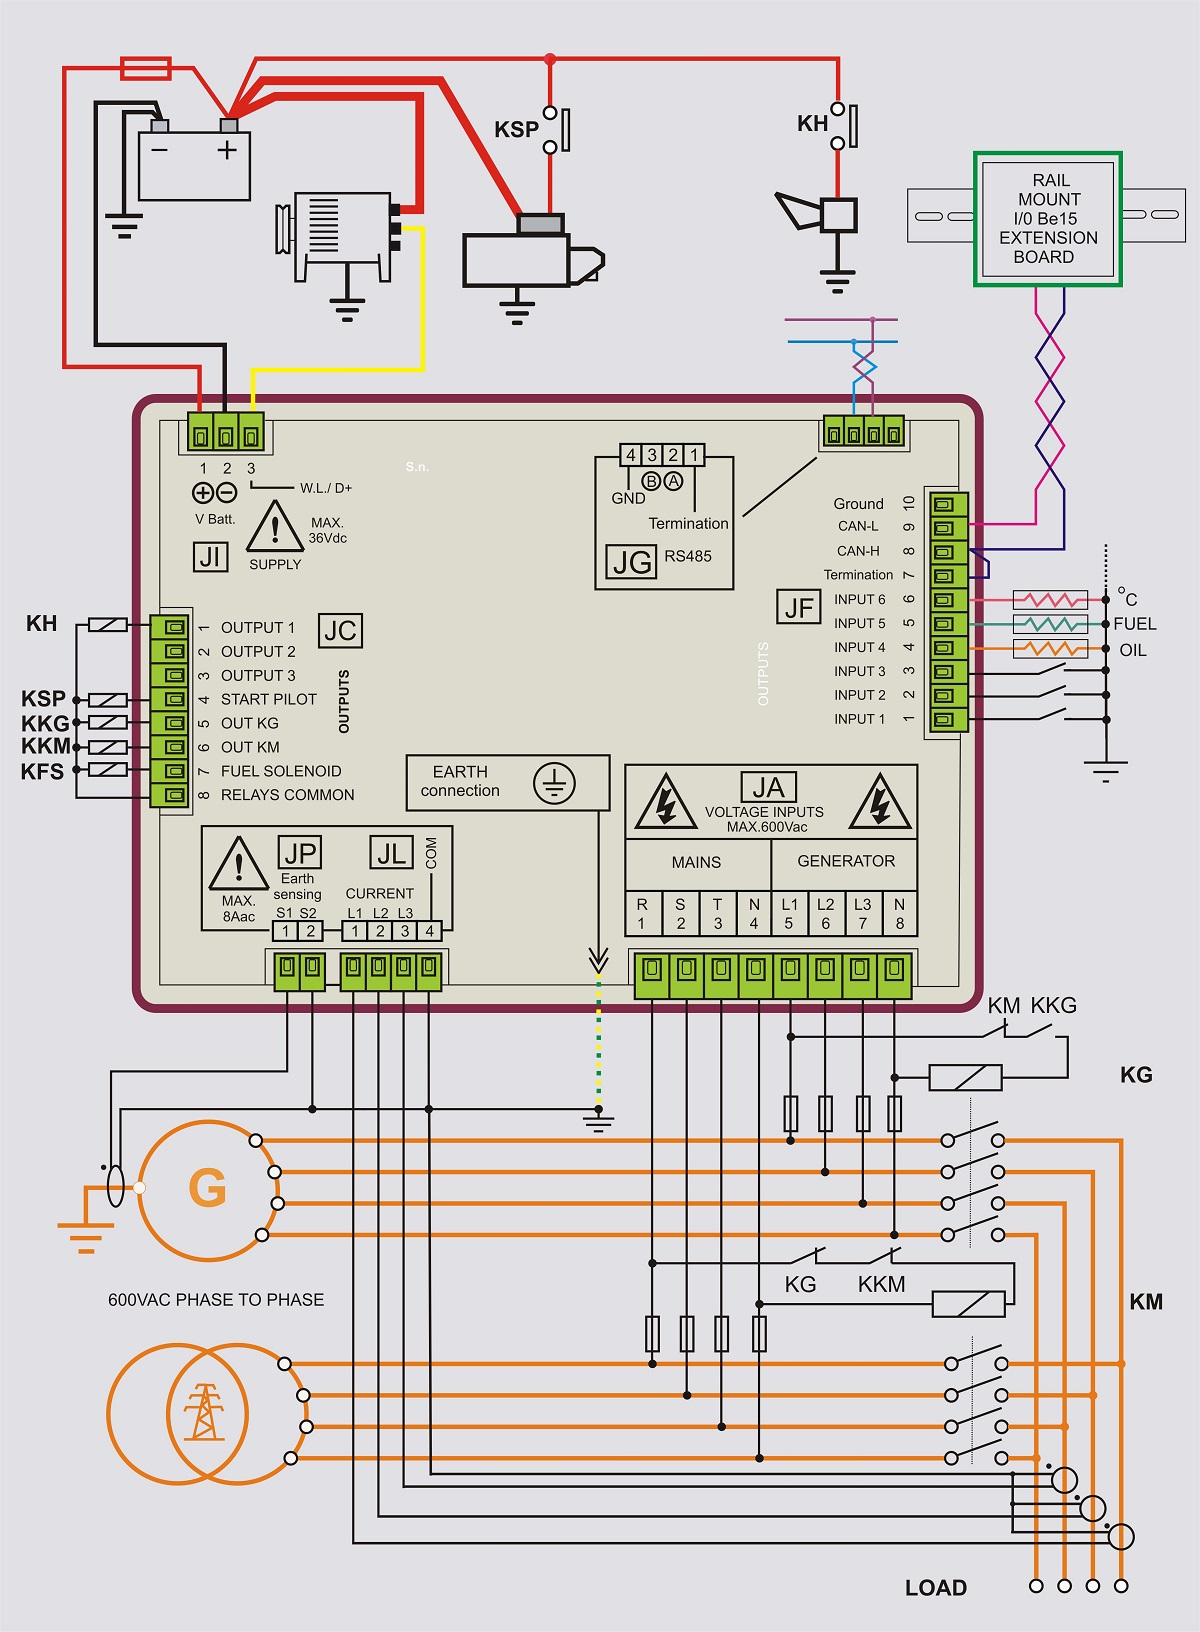 WIRING DIAGRAM AMF CONTROLLER BeK ZERO?resize\=665%2C904\&ssl\=1 bajaj 4s champion wiring diagram bajaj 4s champion wiring diagram champion wiring diagram at gsmx.co